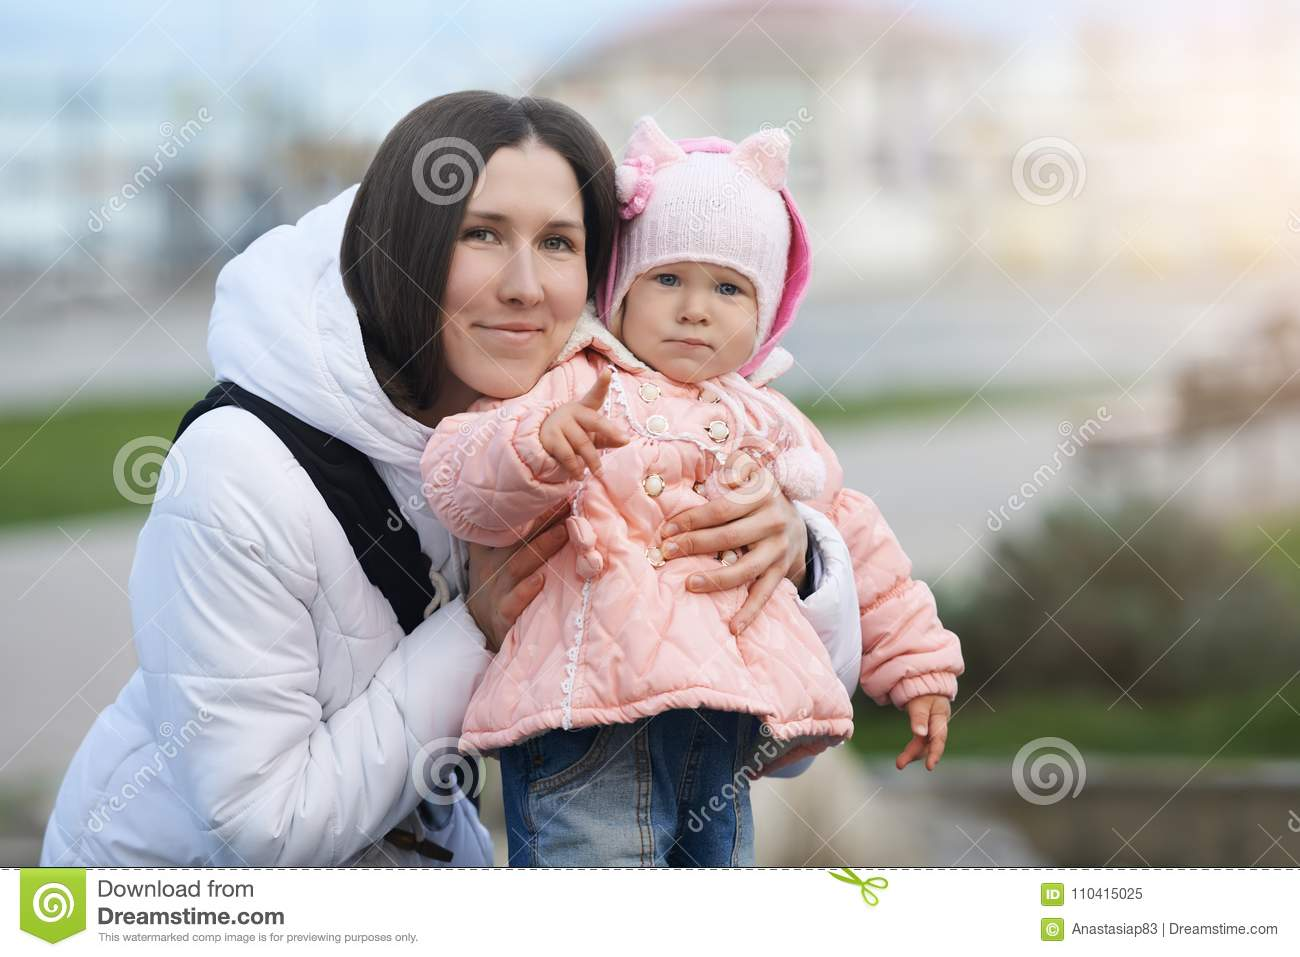 Street portrait of the smiling mother with her serious daughter. Mood difference